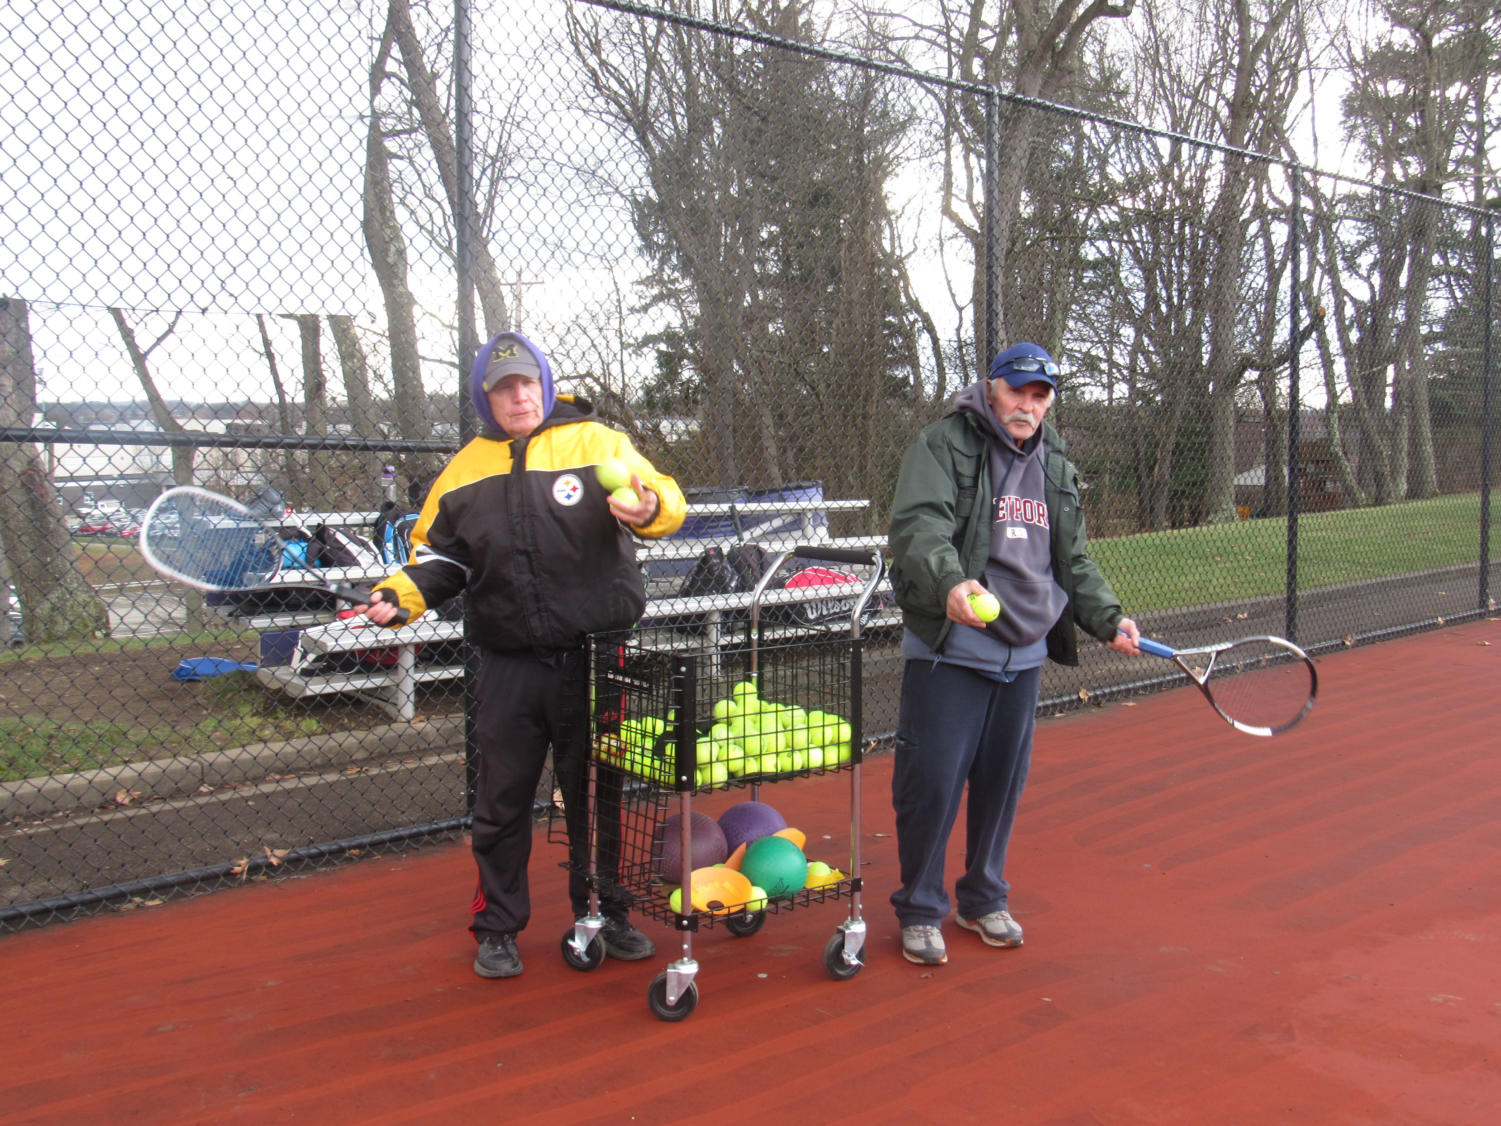 New tennis coaches Tom Kirk (left) and Dave Shenefelt (right) prepare to feed tennis balls to players in warm-ups. The coaches hope to lead their team to playoffs this season.